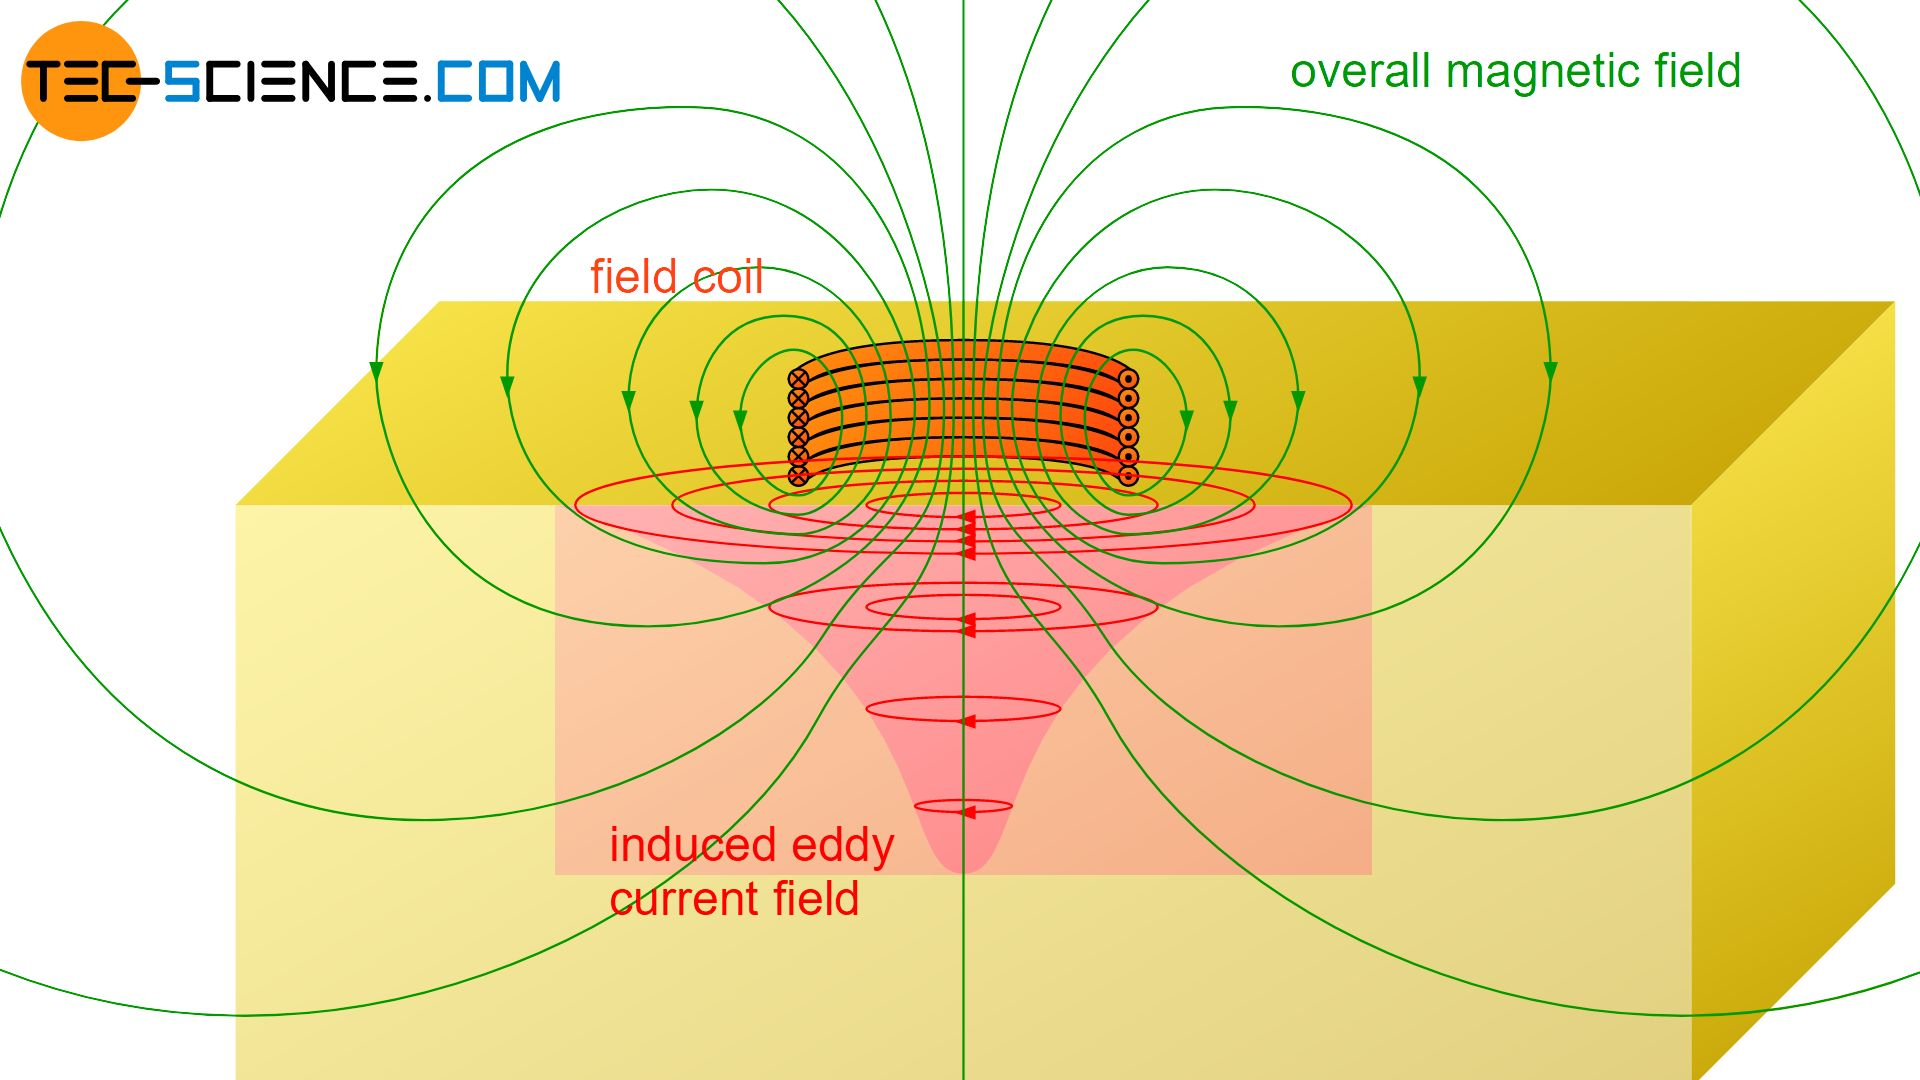 Overall magnetic field as superposition of primary and secondary field